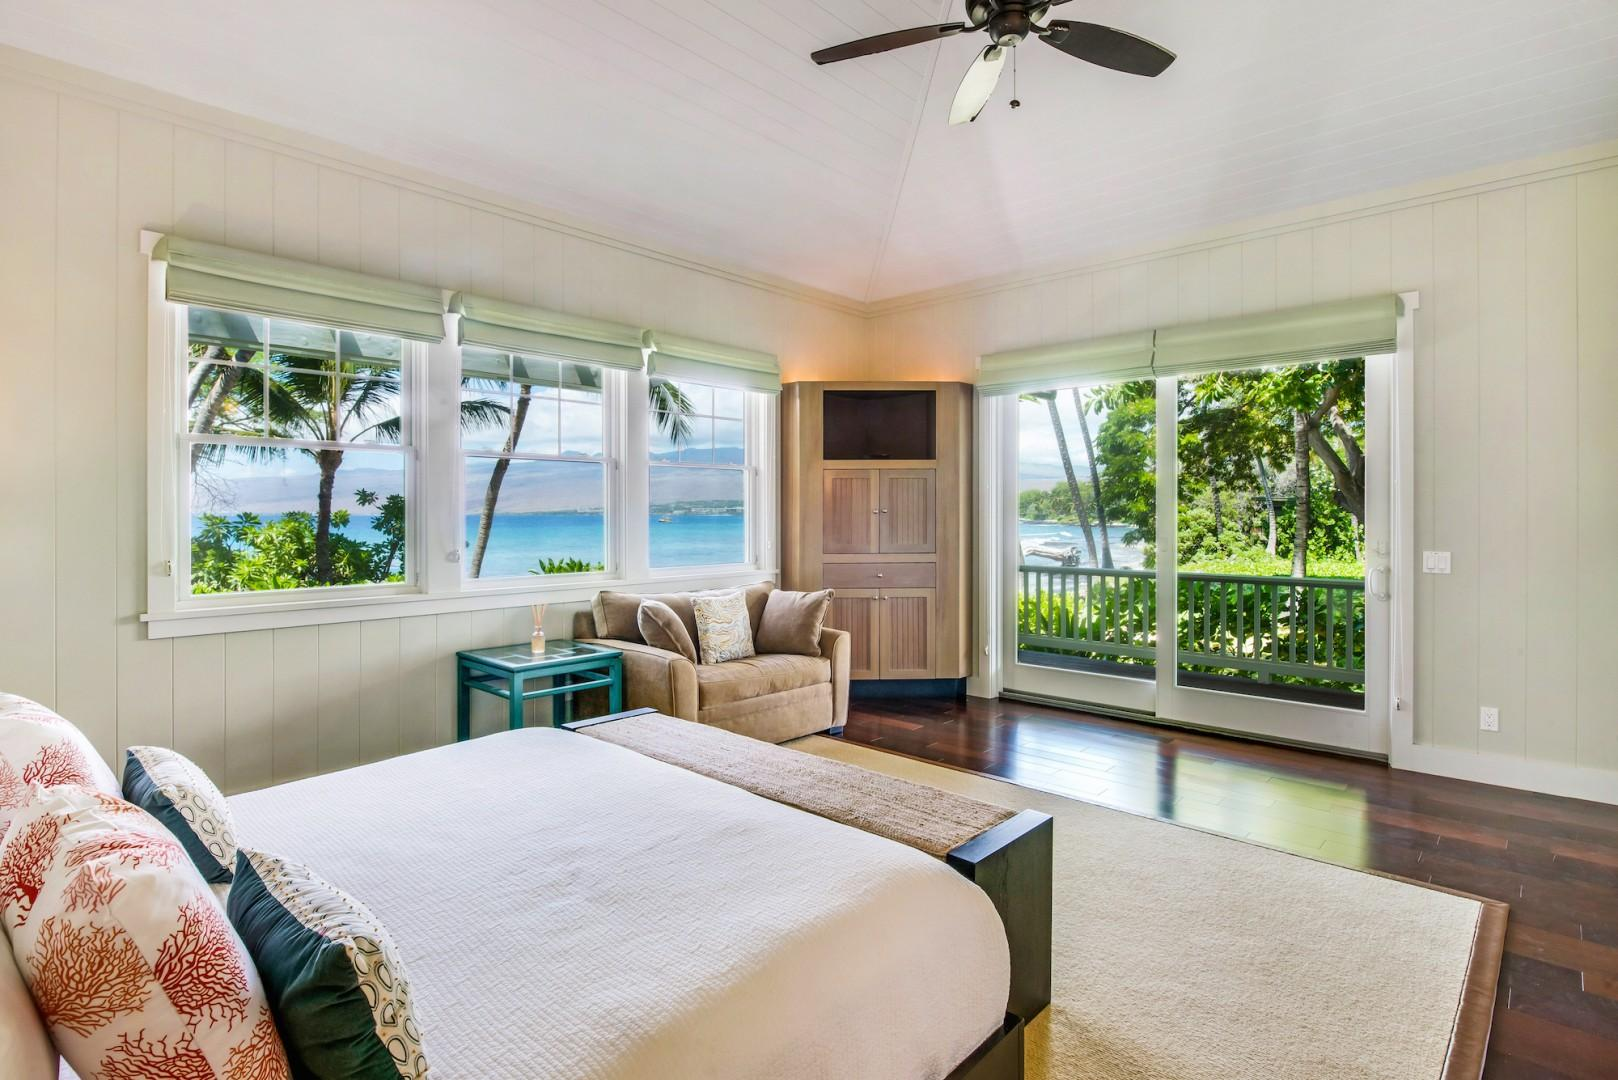 Bright and Spacious Master Bedroom w/ King Size Bed, Split Air-Conditioning, Flat Screen Smart TV, Sonos Sound System, Walk-in Closet & Ensuite Bath.